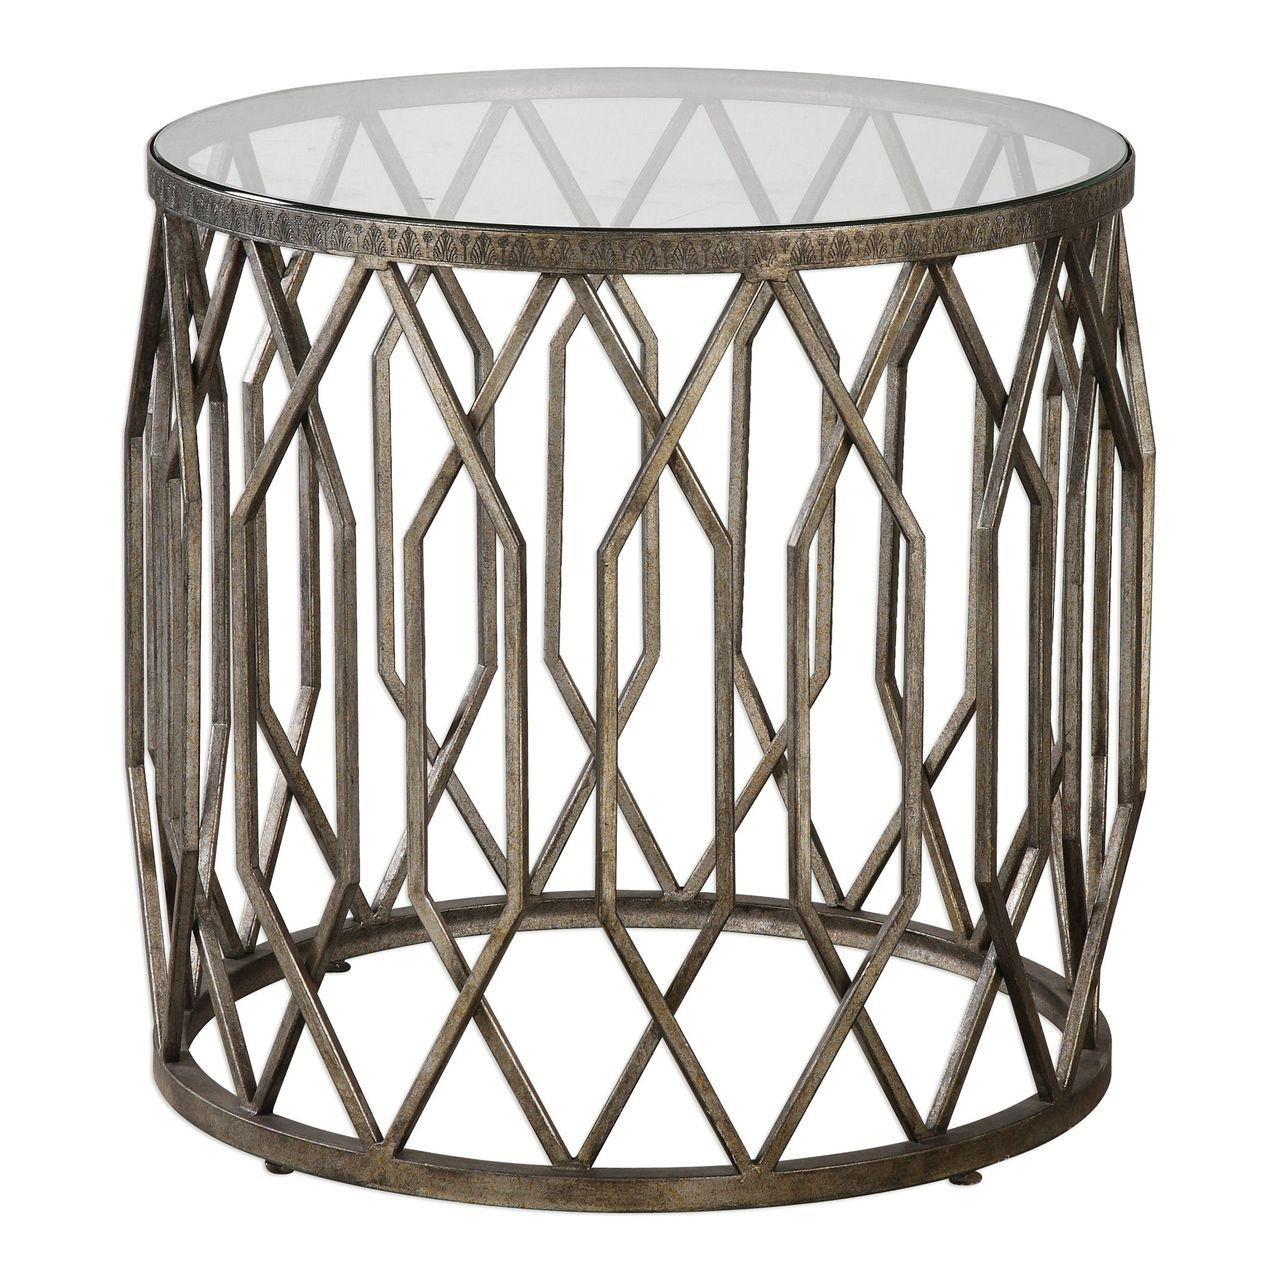 open silver fretwork drum accent table round end cage tribal storage decorative lamps that run batteries marble coffee target gold legs counter height gathering small black side